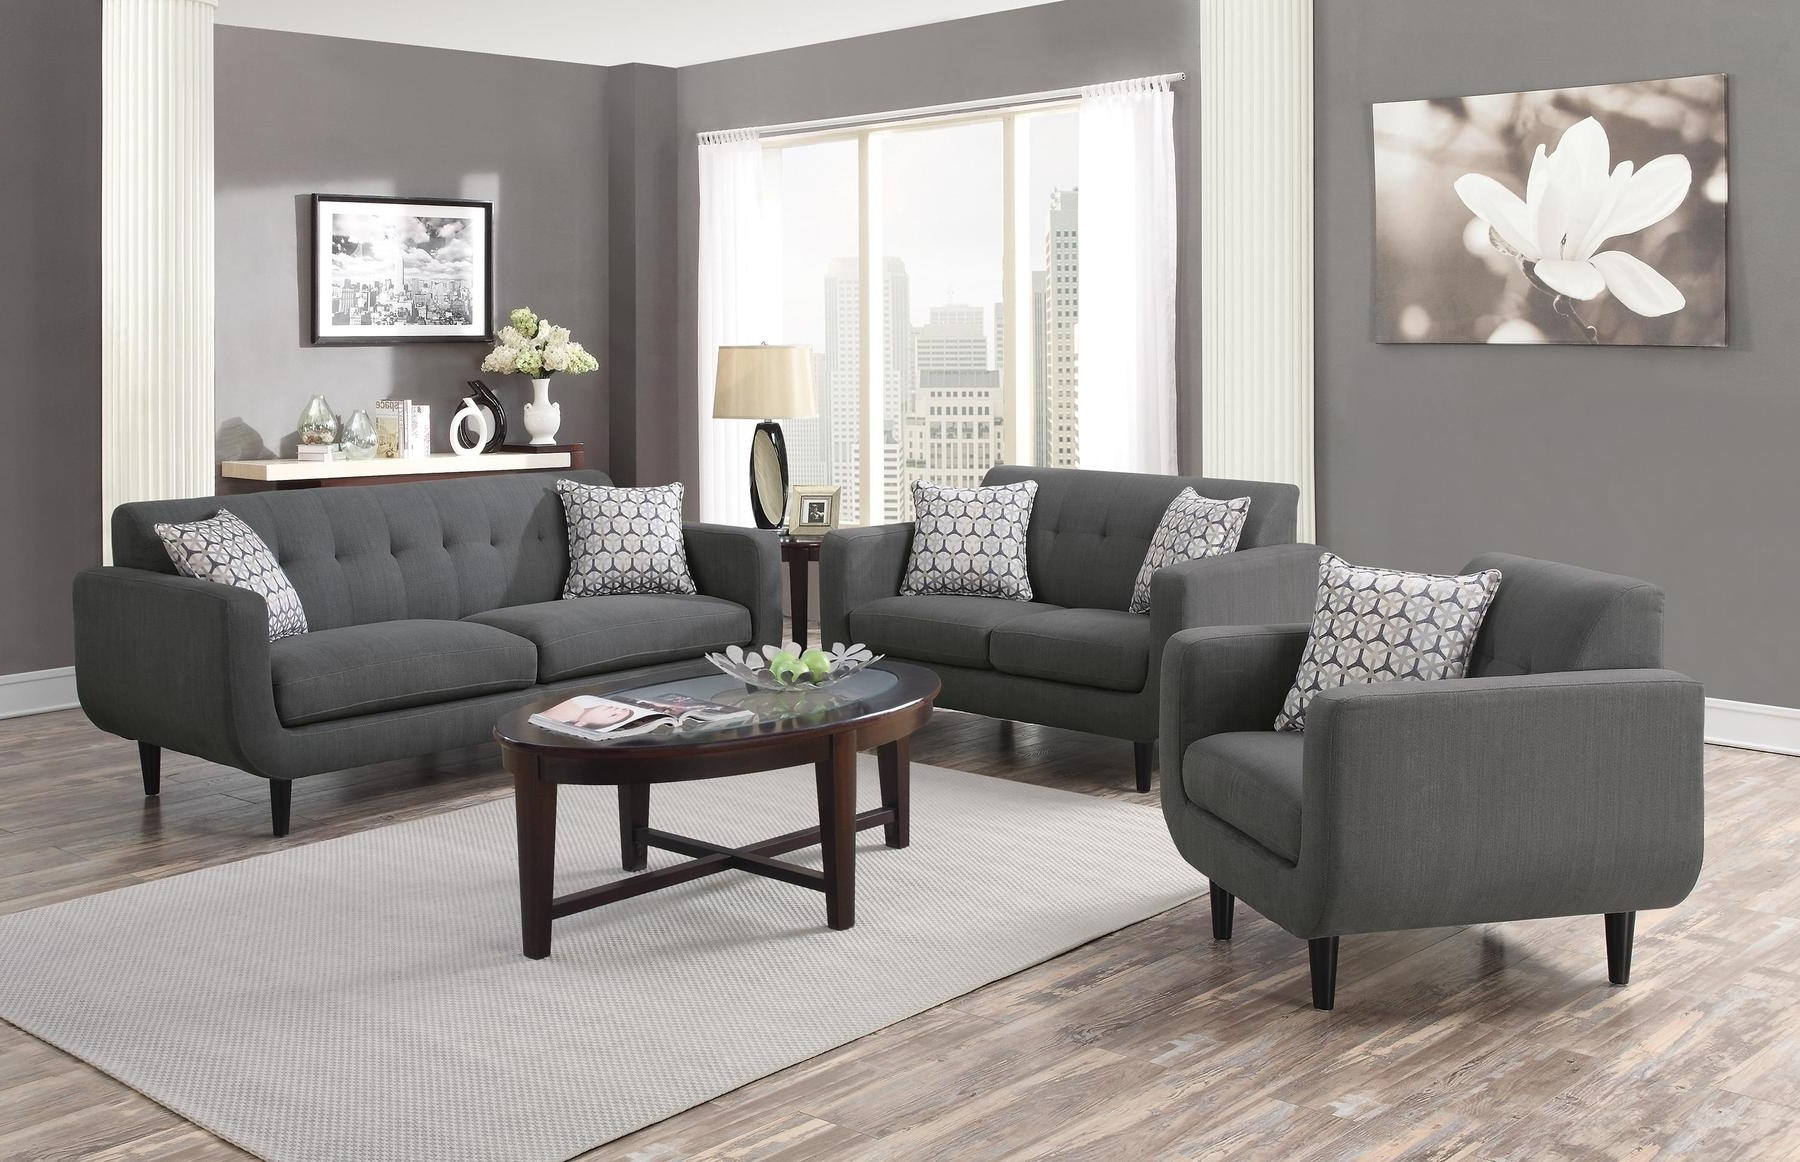 2019 Fabric Sofas For Stansall Gray Sofa 505201 Coaster Furniture Fabric Sofas At (View 9 of 20)